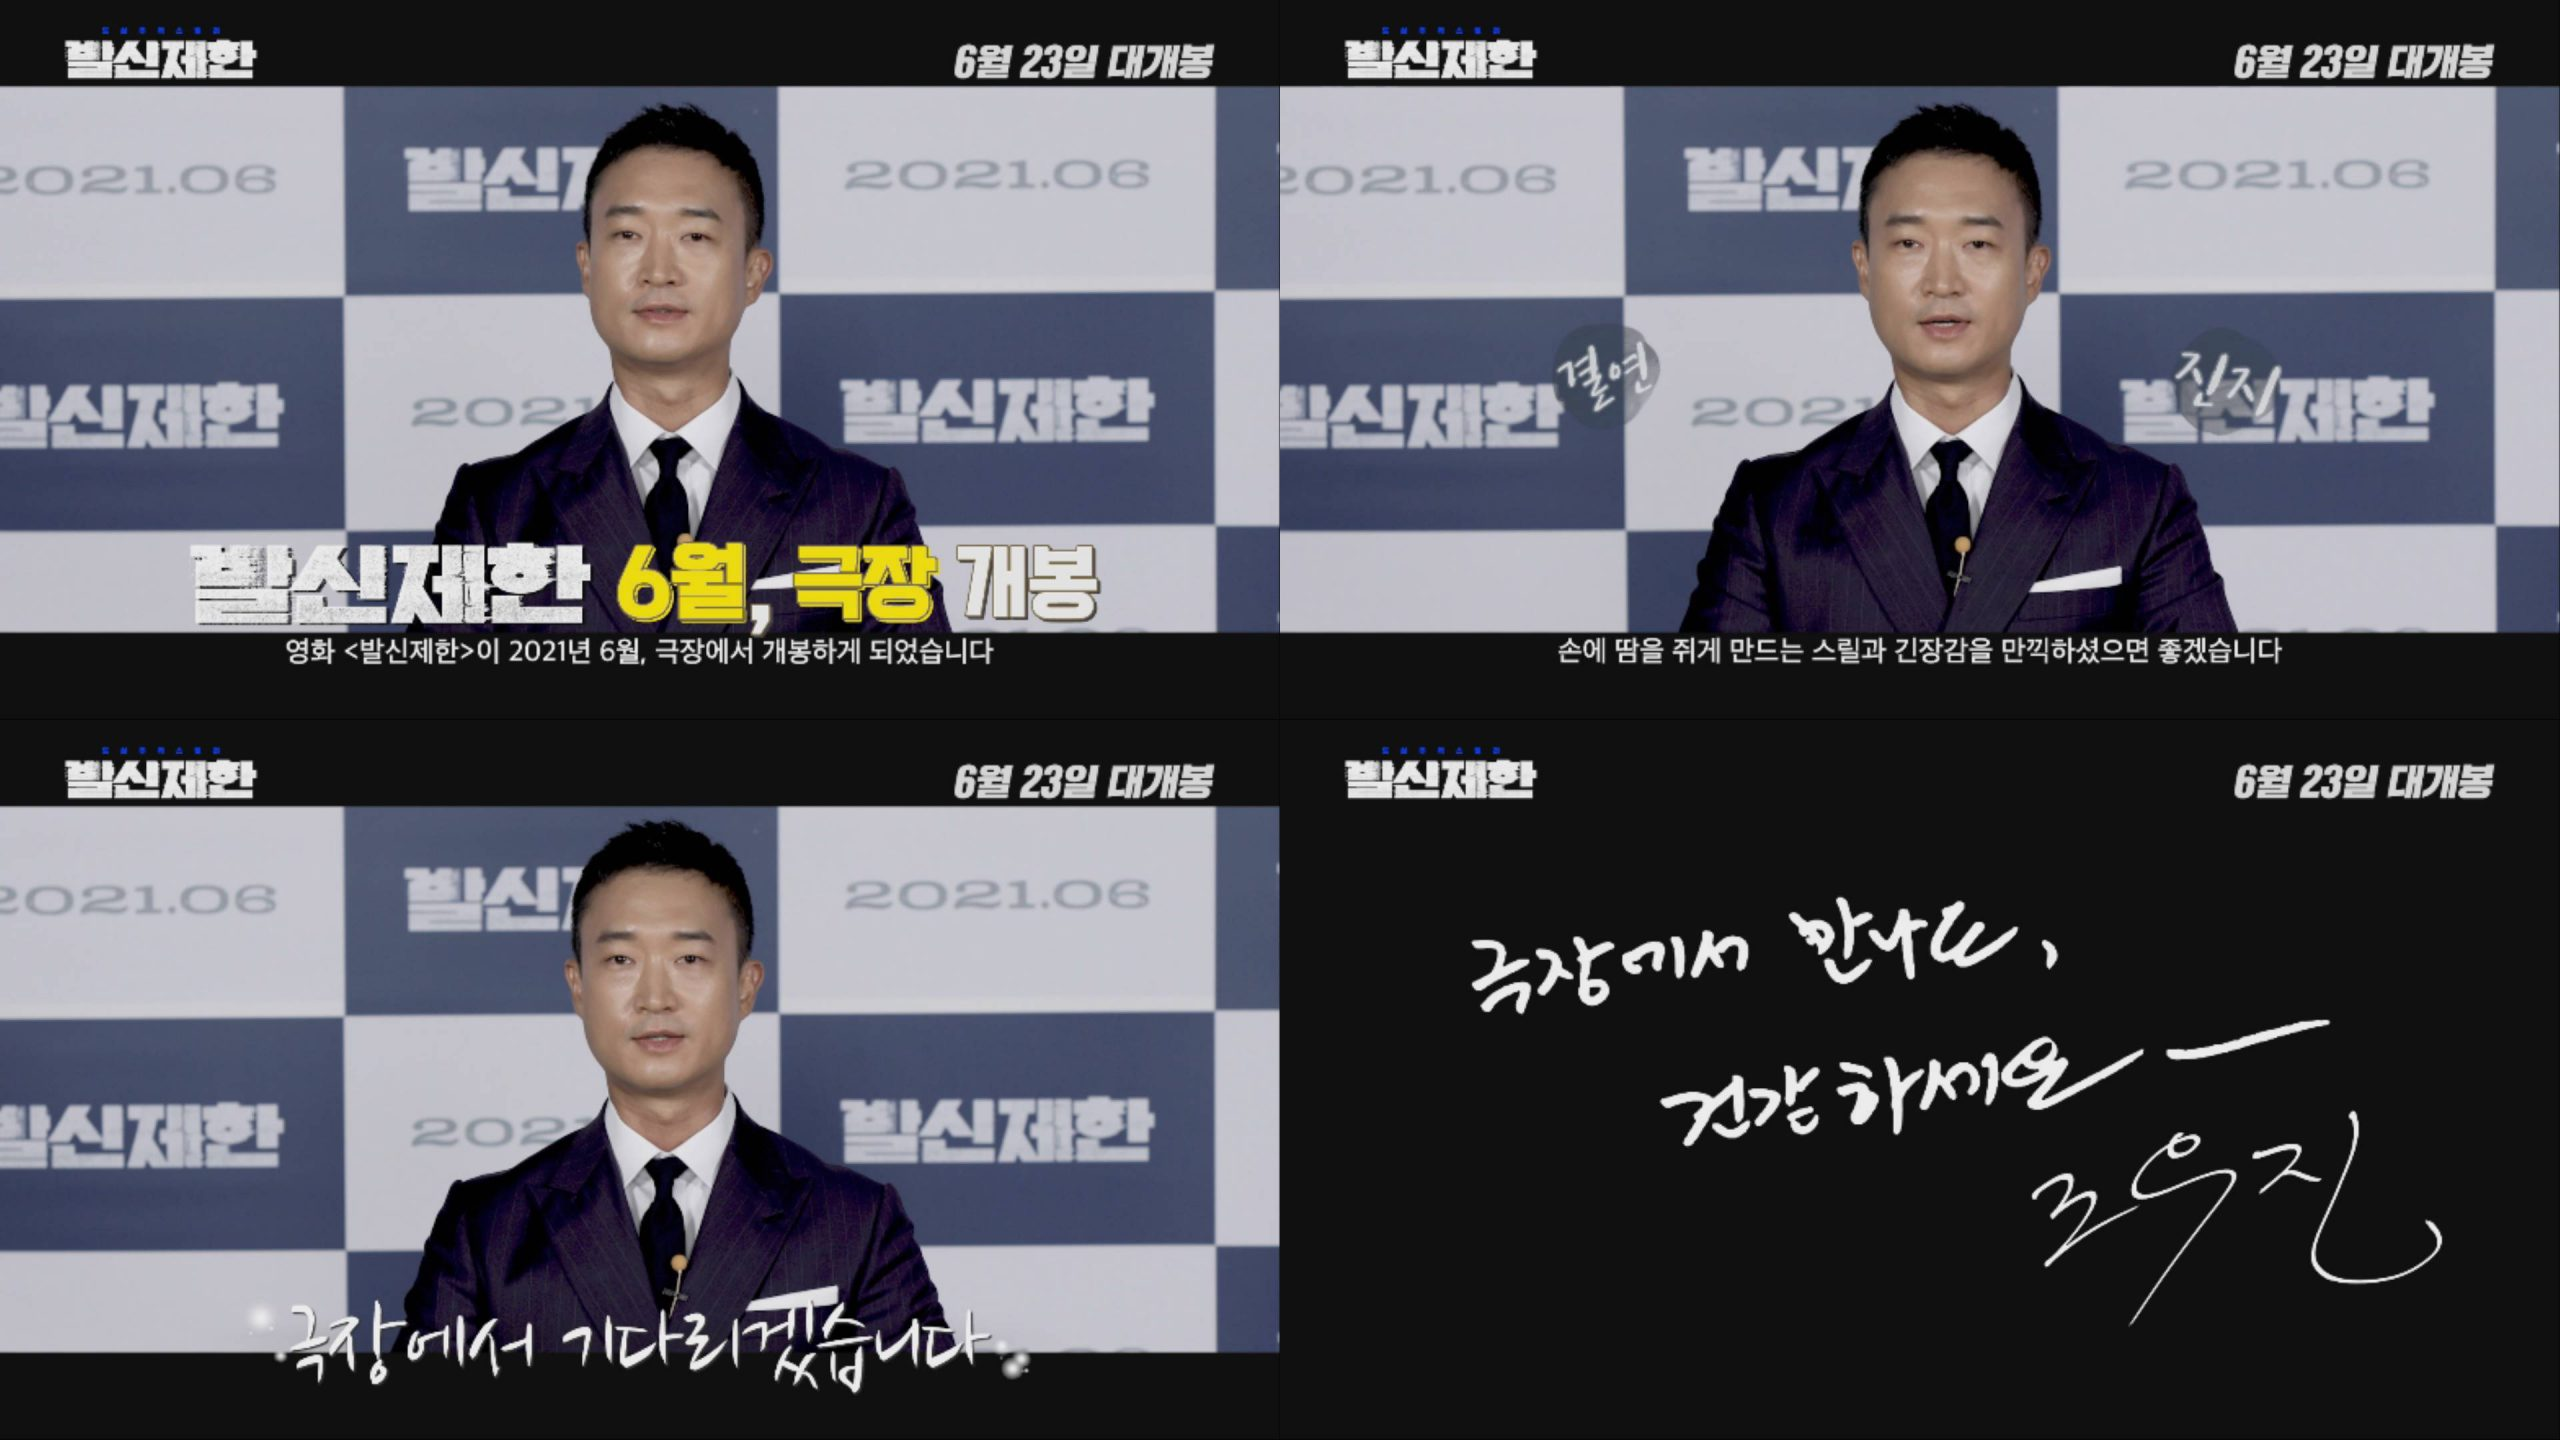 'HARD HIT' starring Cho Woo-jin confirmed for release on the 23rd